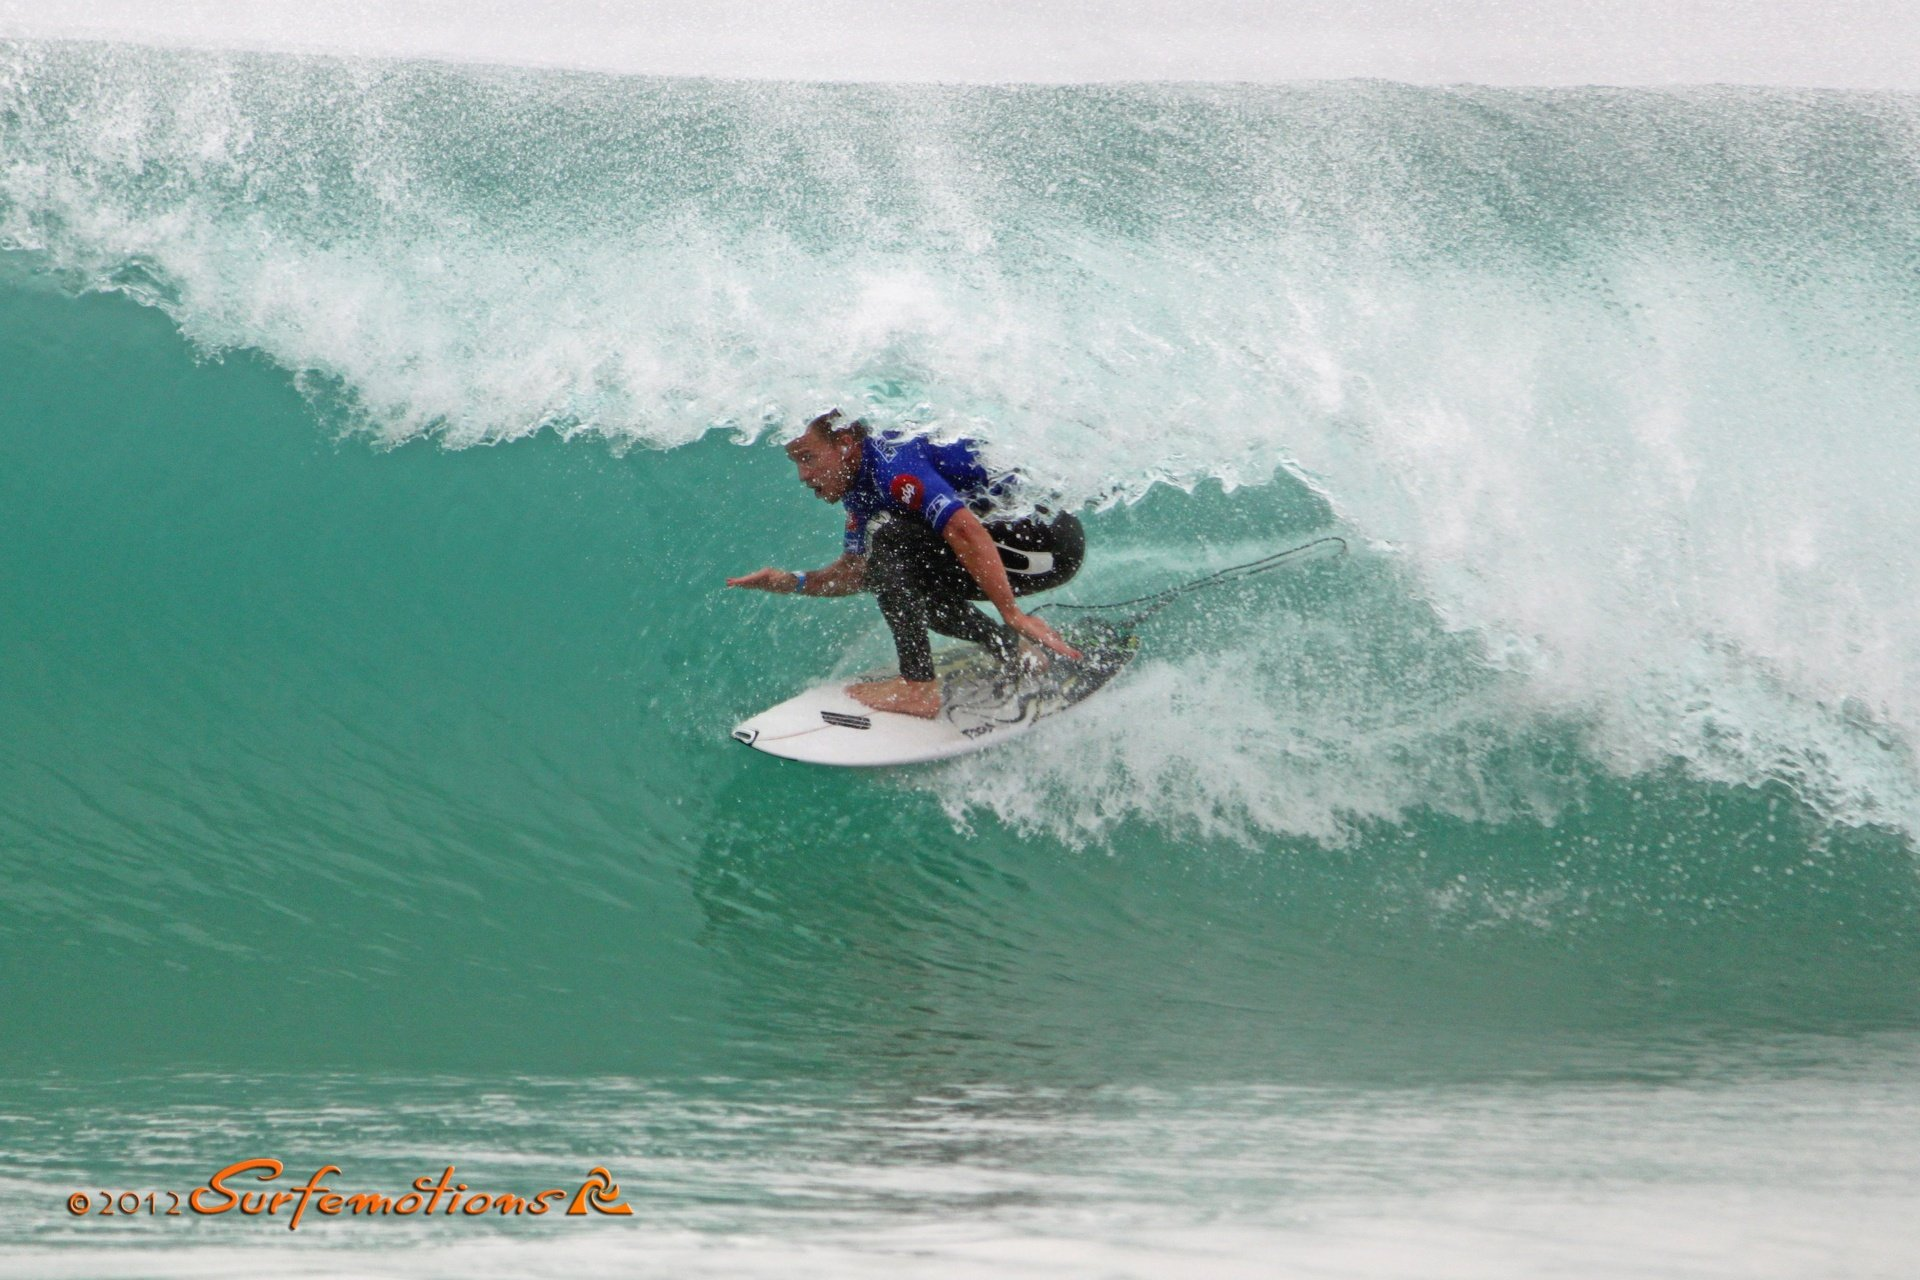 Surf Emotions's photo of Supertubos